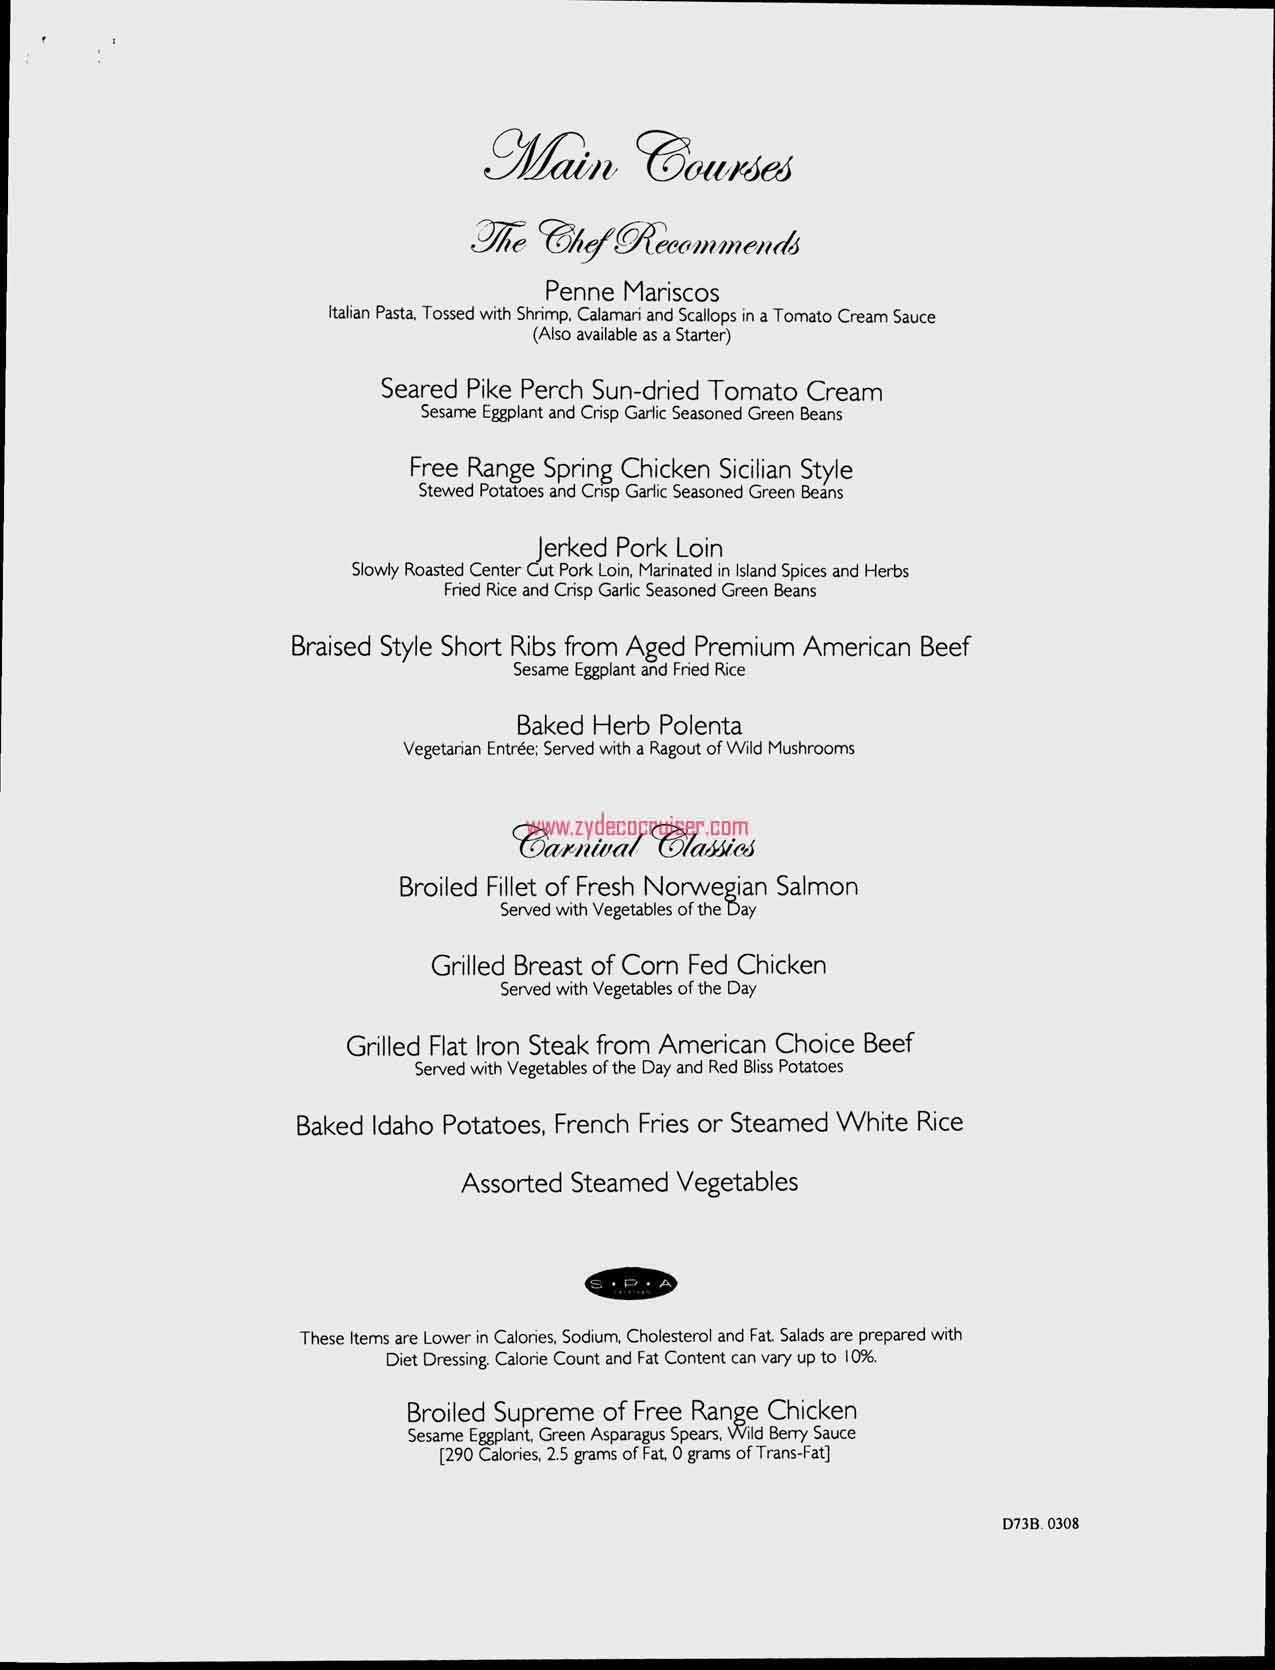 Dinner Menu, Day 2, Page 2, Carnival Freedom